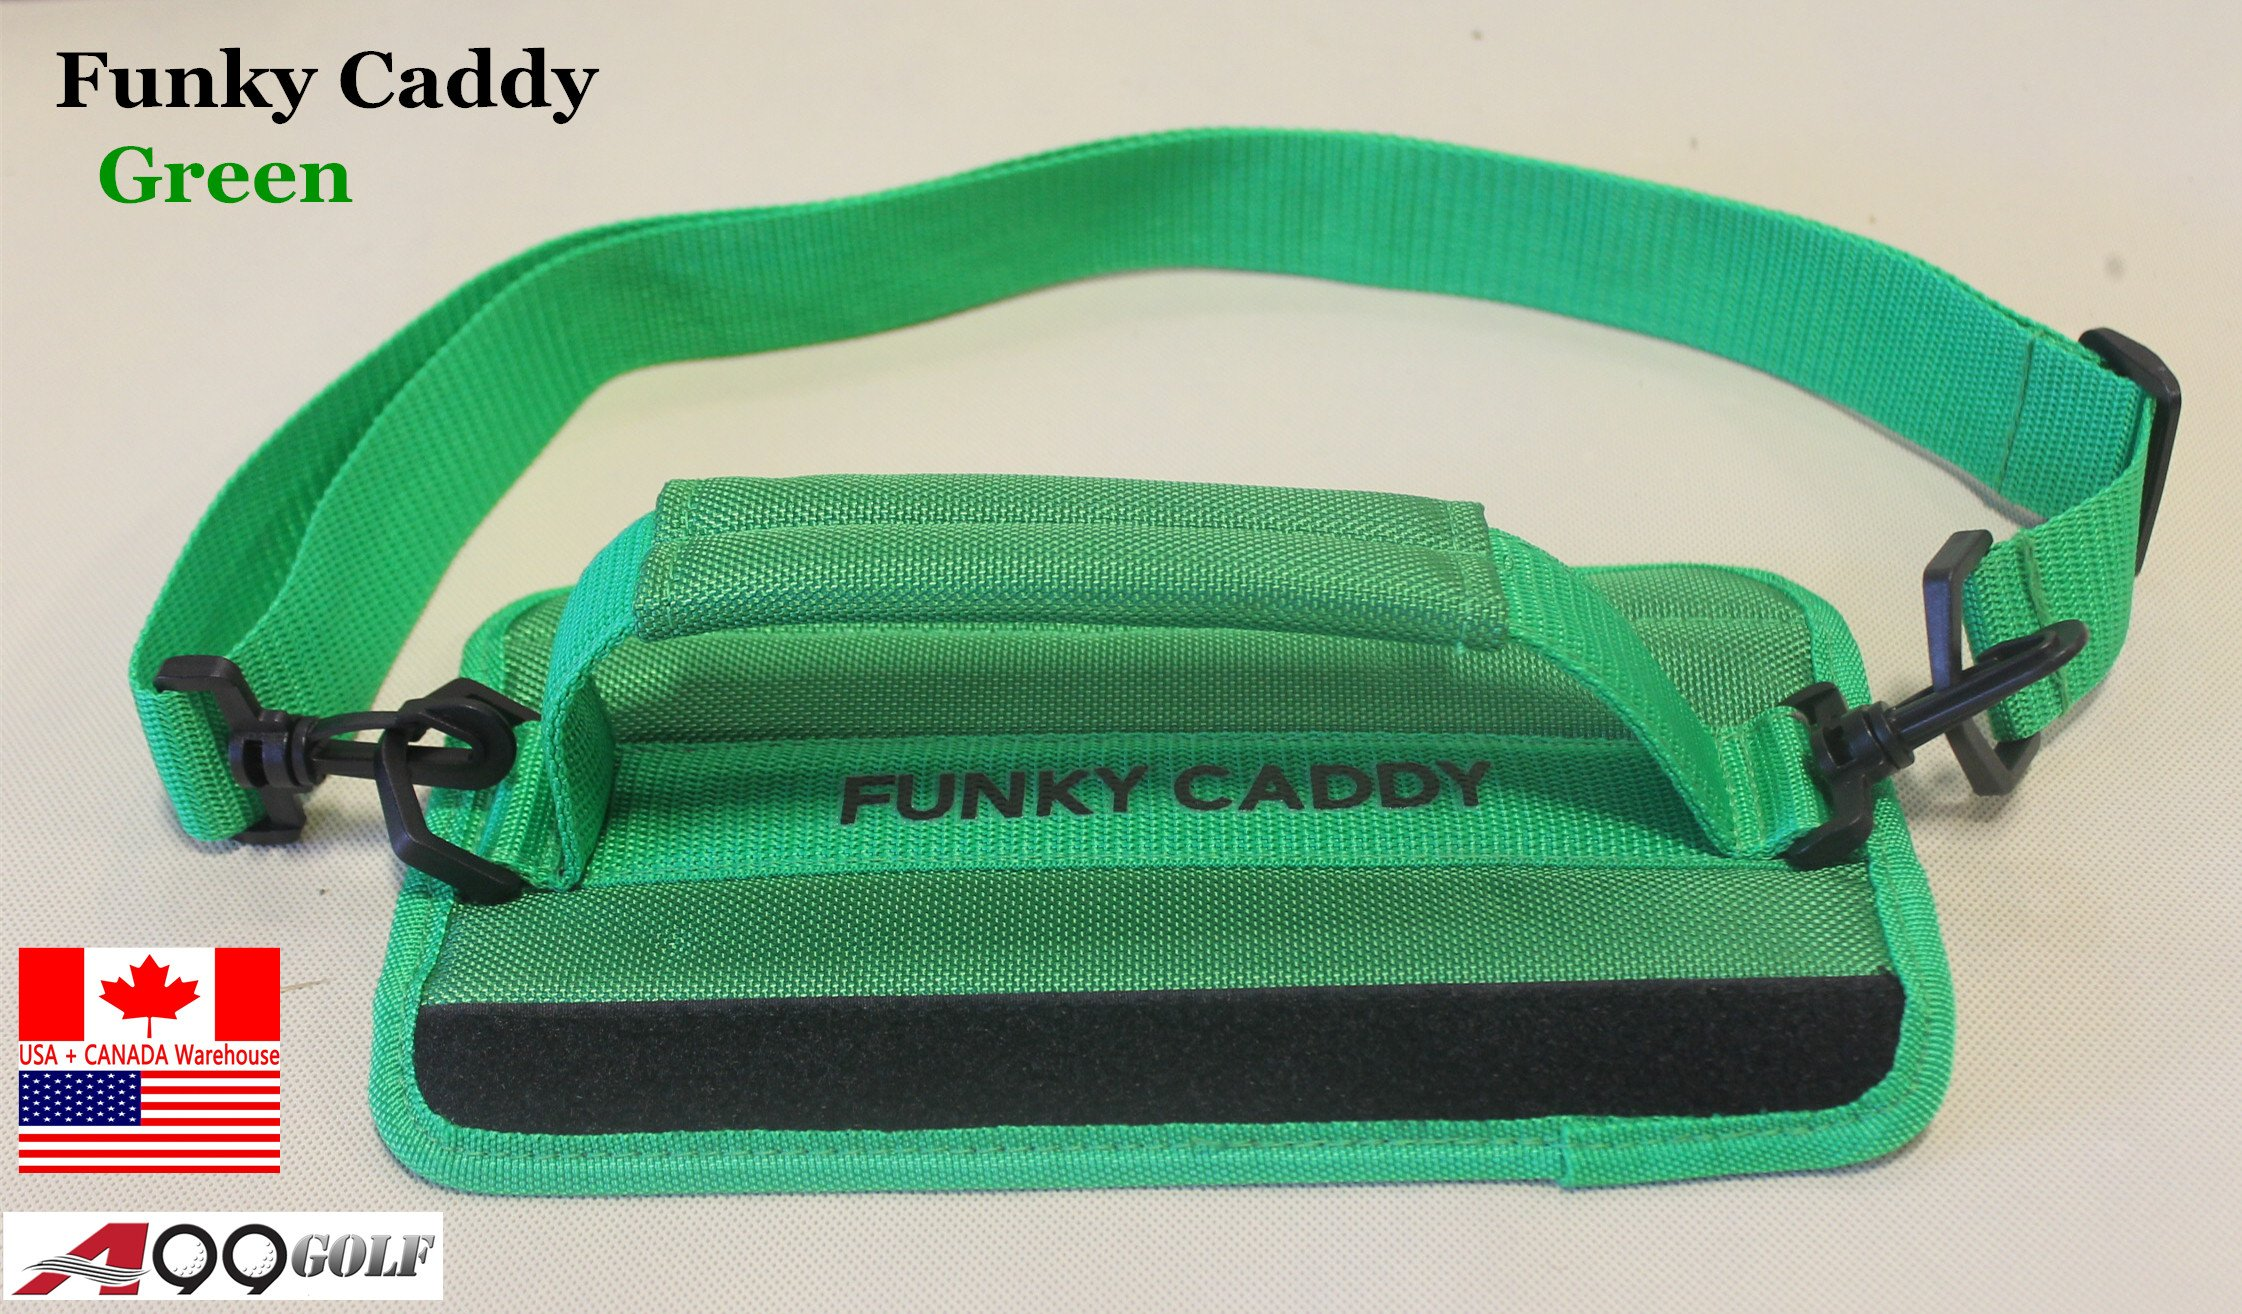 C12 A99 Golf Funky Caddy Golf Bag Driving Range Carrier Sleeve Light with velcro by A99 Golf (Image #2)